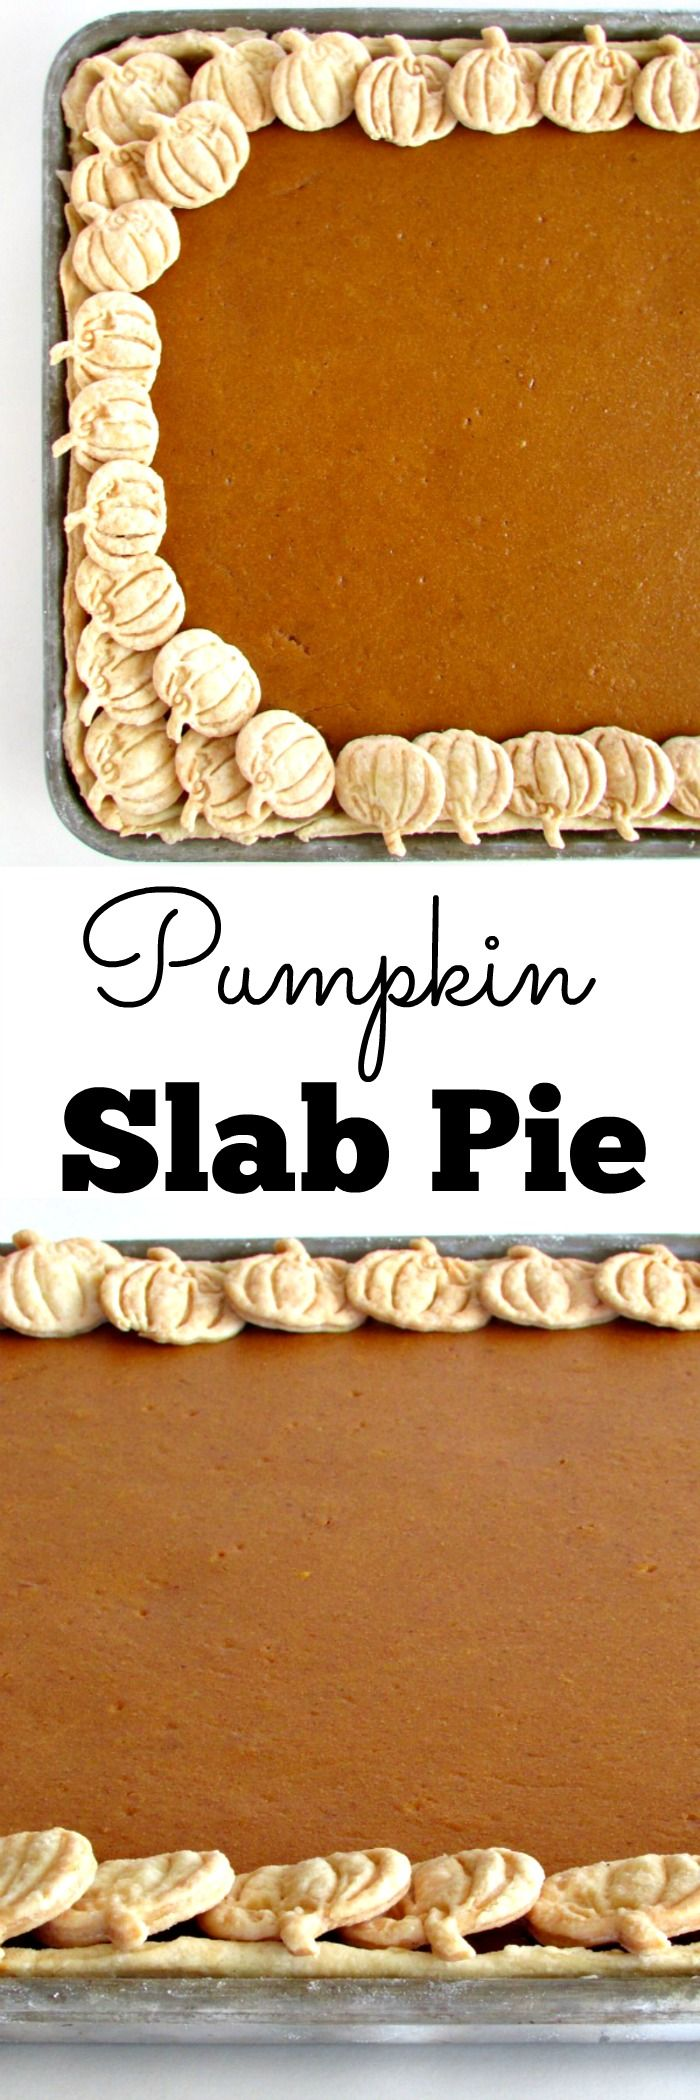 Pumpkin Slab Pie - This pie is amazing because it has MORE CRUST than regular pumpkin pie. Also, it's simpler to make than regular pumpkin pie, and those pumpkin crust cut outs are so easy if you just have the right tool!   www.louloubiscuit.com